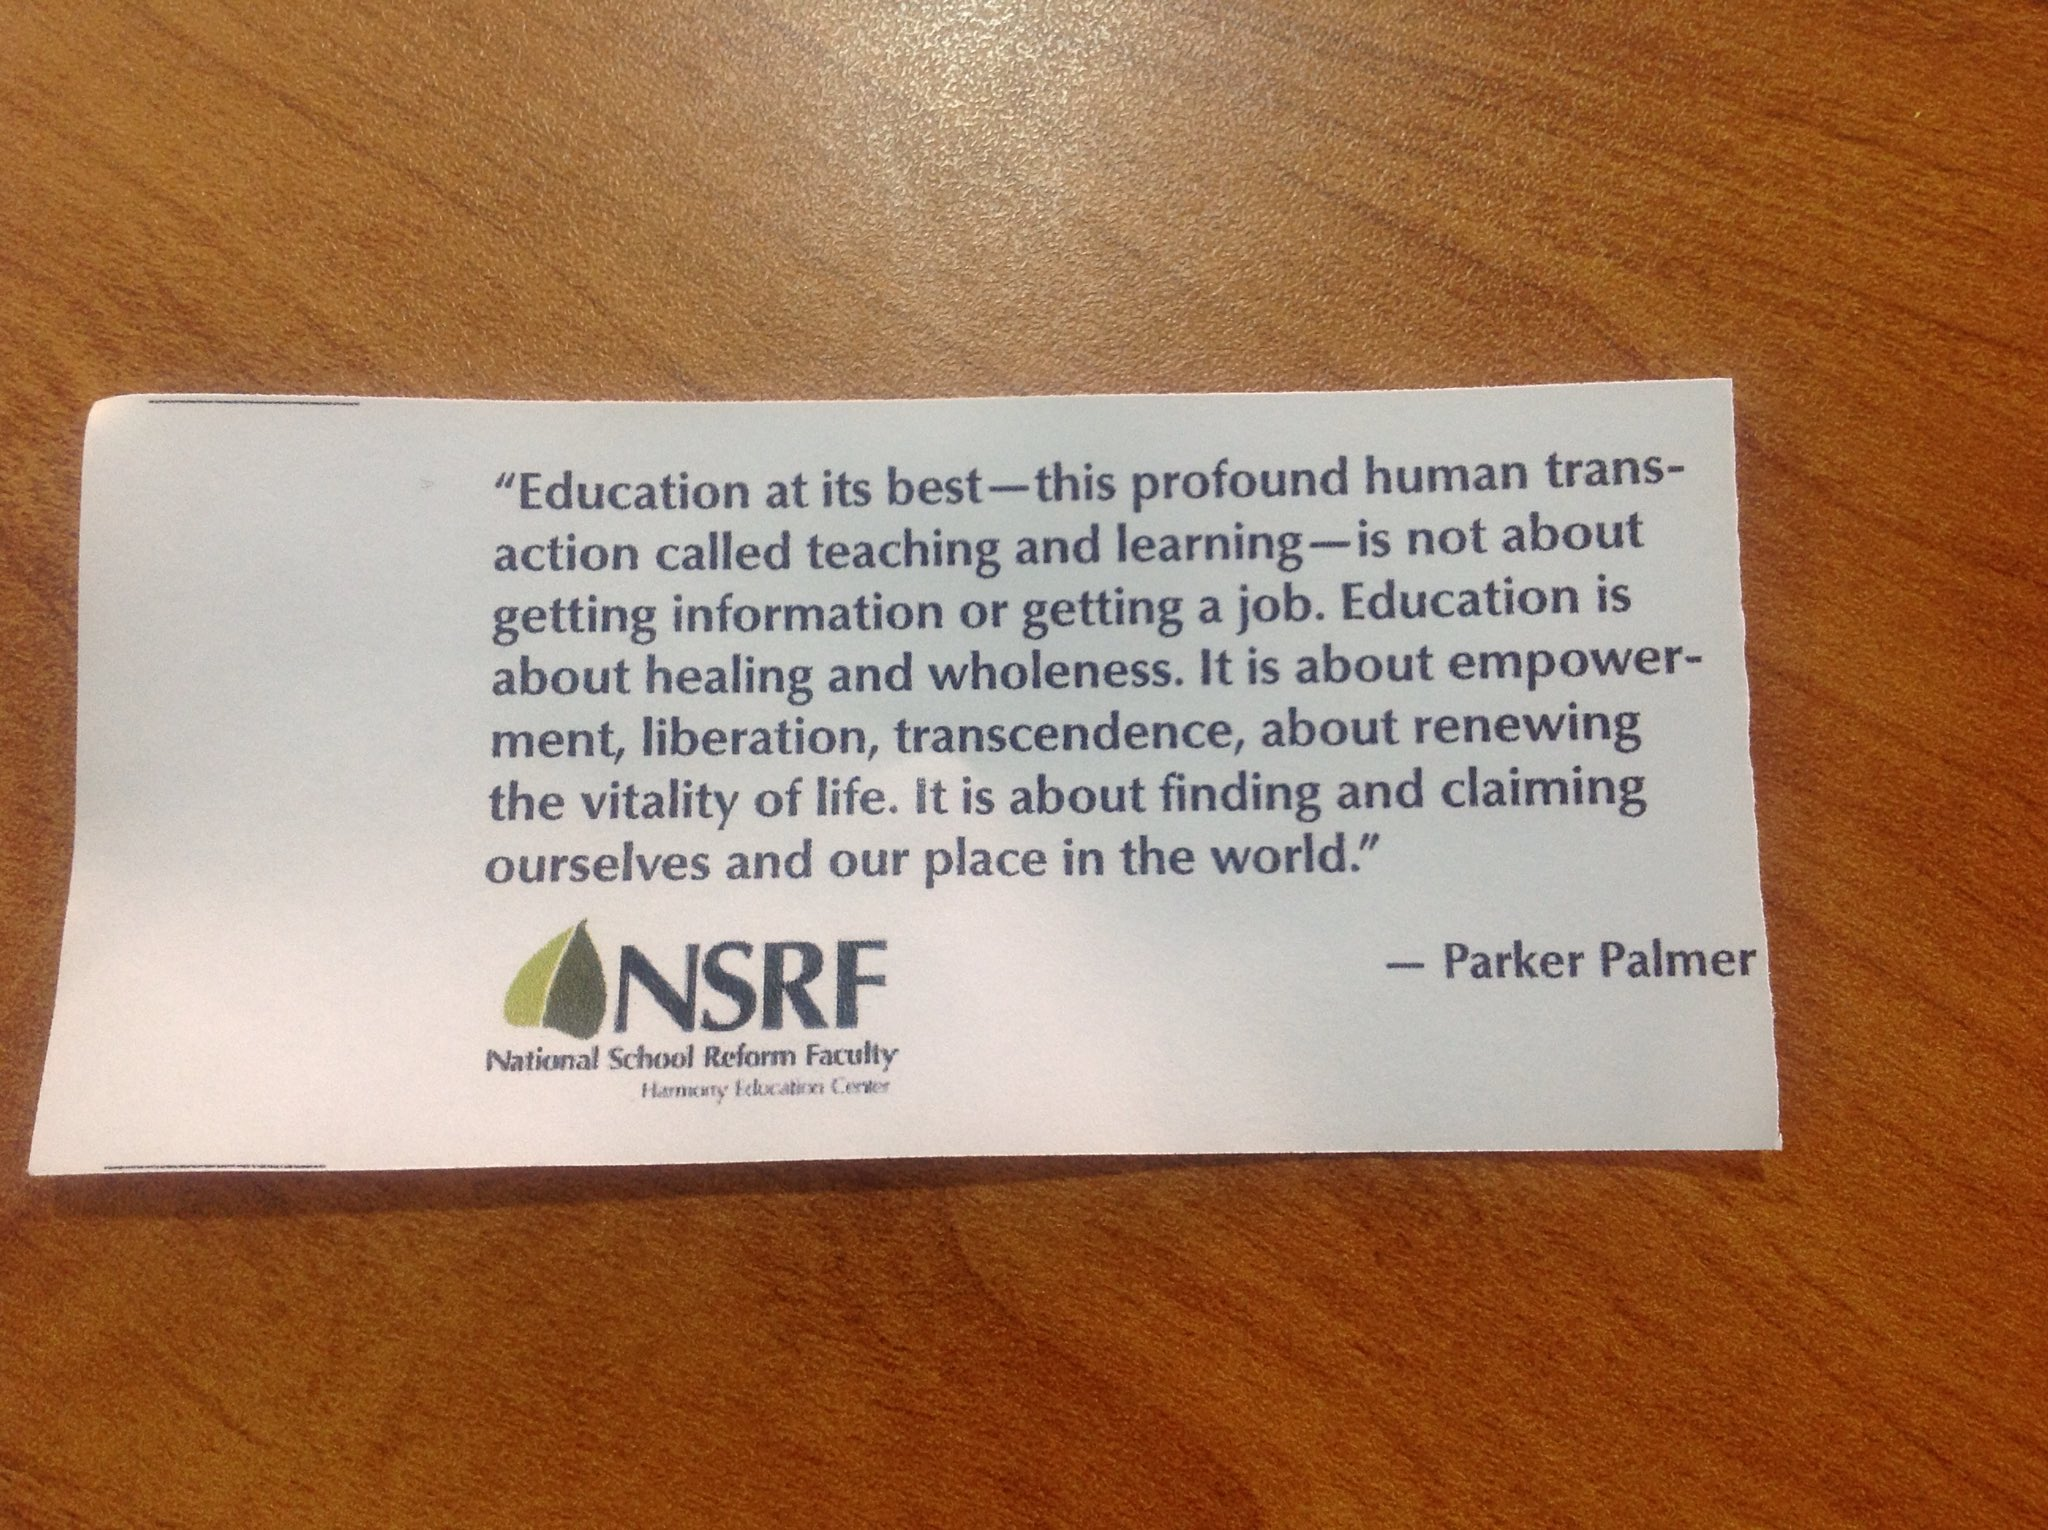 Great #criticalfriends quote for #AISQ8 ... Education is about healing and wholeness ... renewing the vitality of life.  (By Parker Palmer) https://t.co/7aJ8VwZKIS